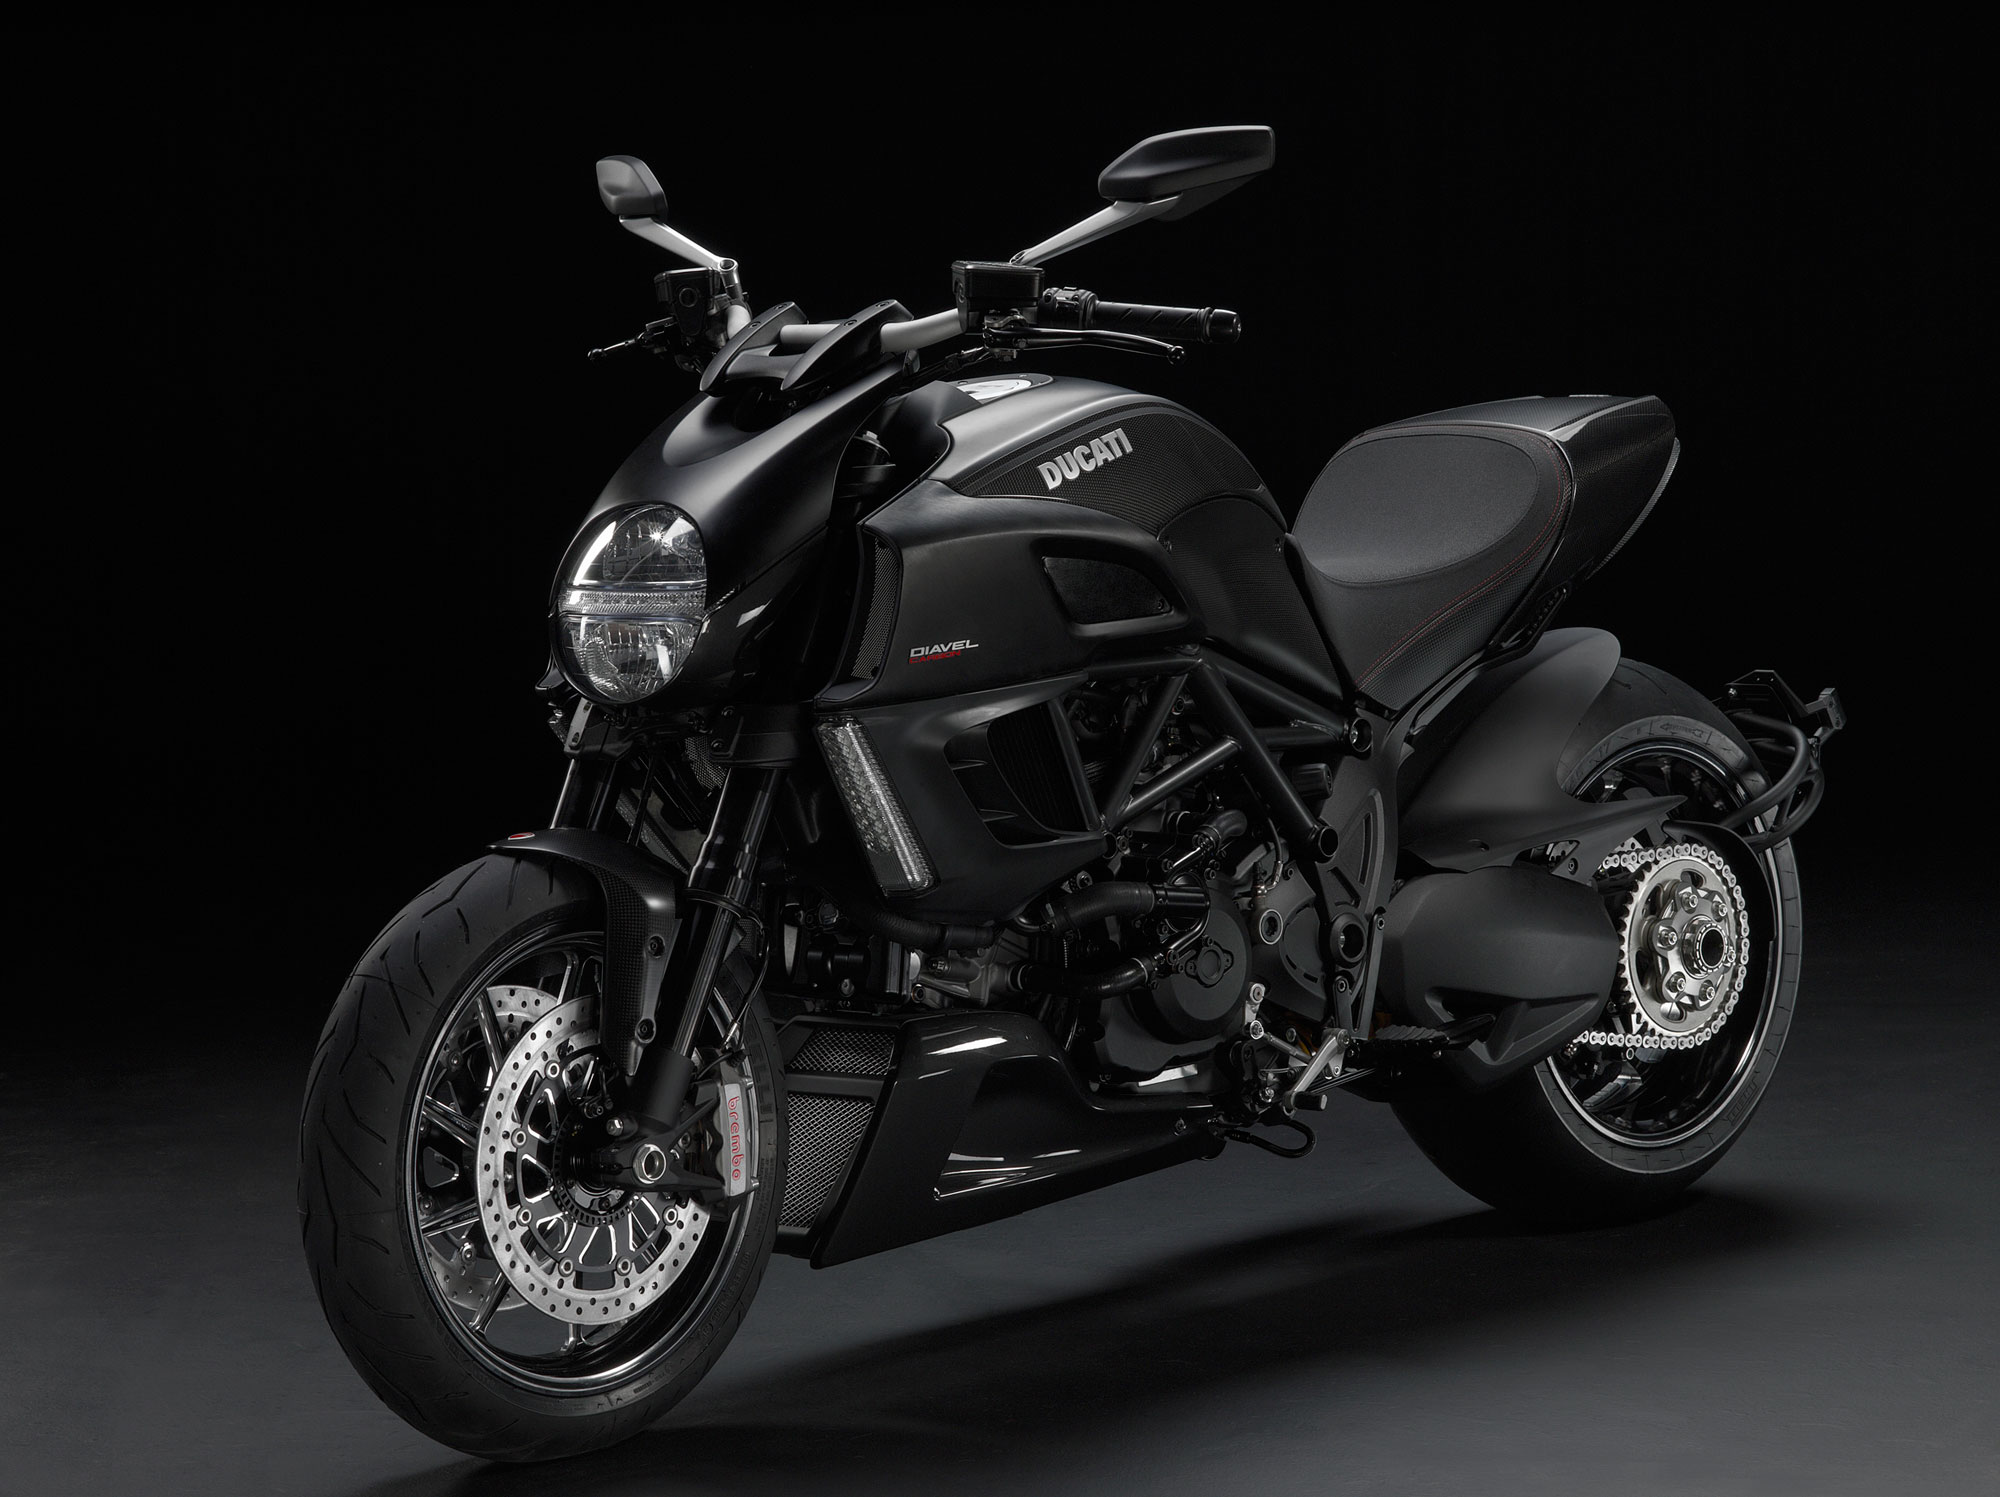 2012 Ducati Diavel Carbon Review